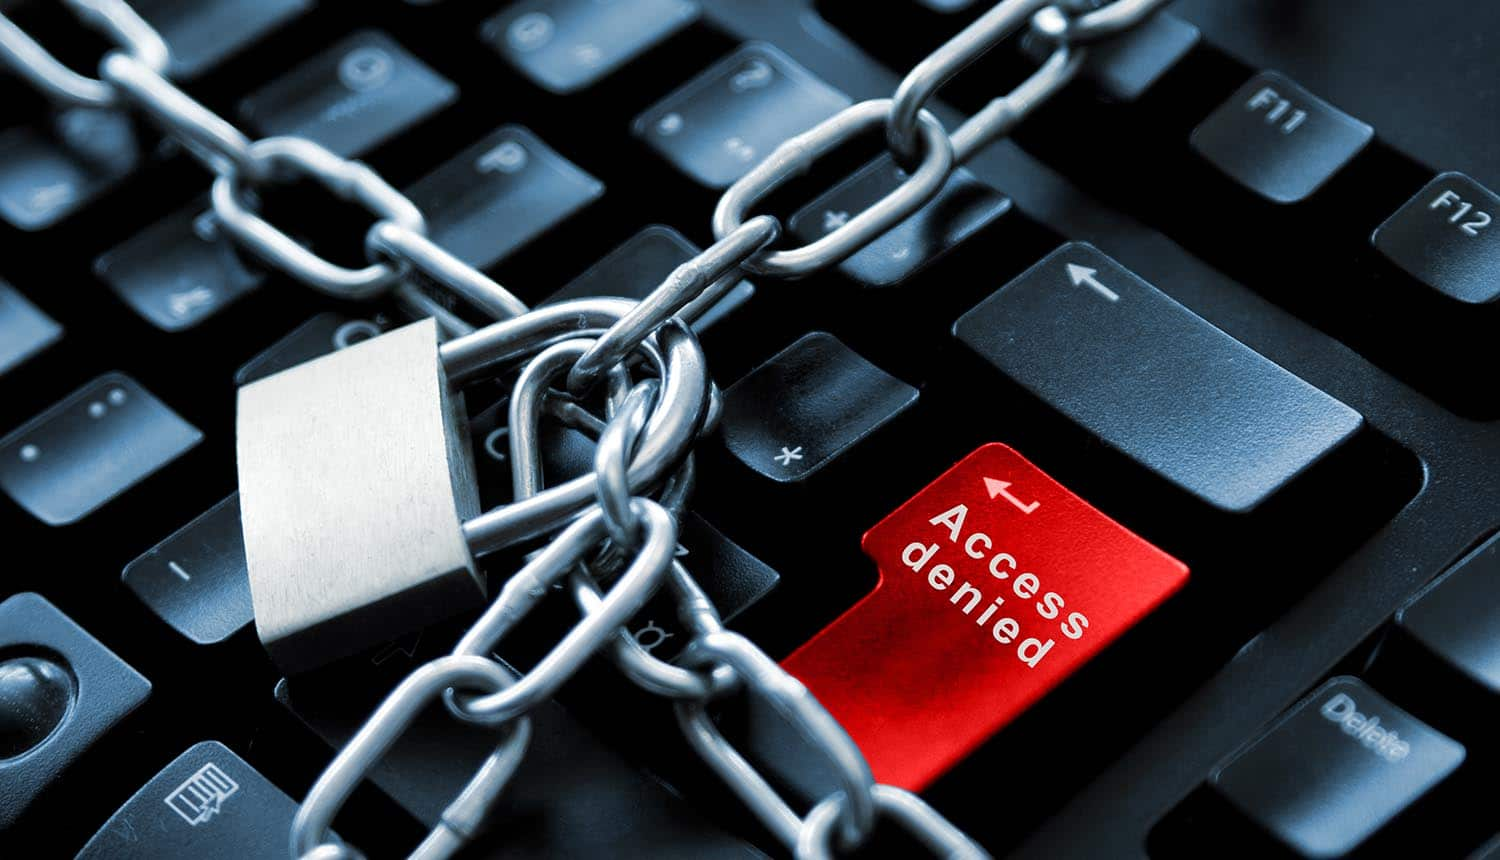 Internet security concept by chain with padlock keyboard showing the dangers of leaked passwords